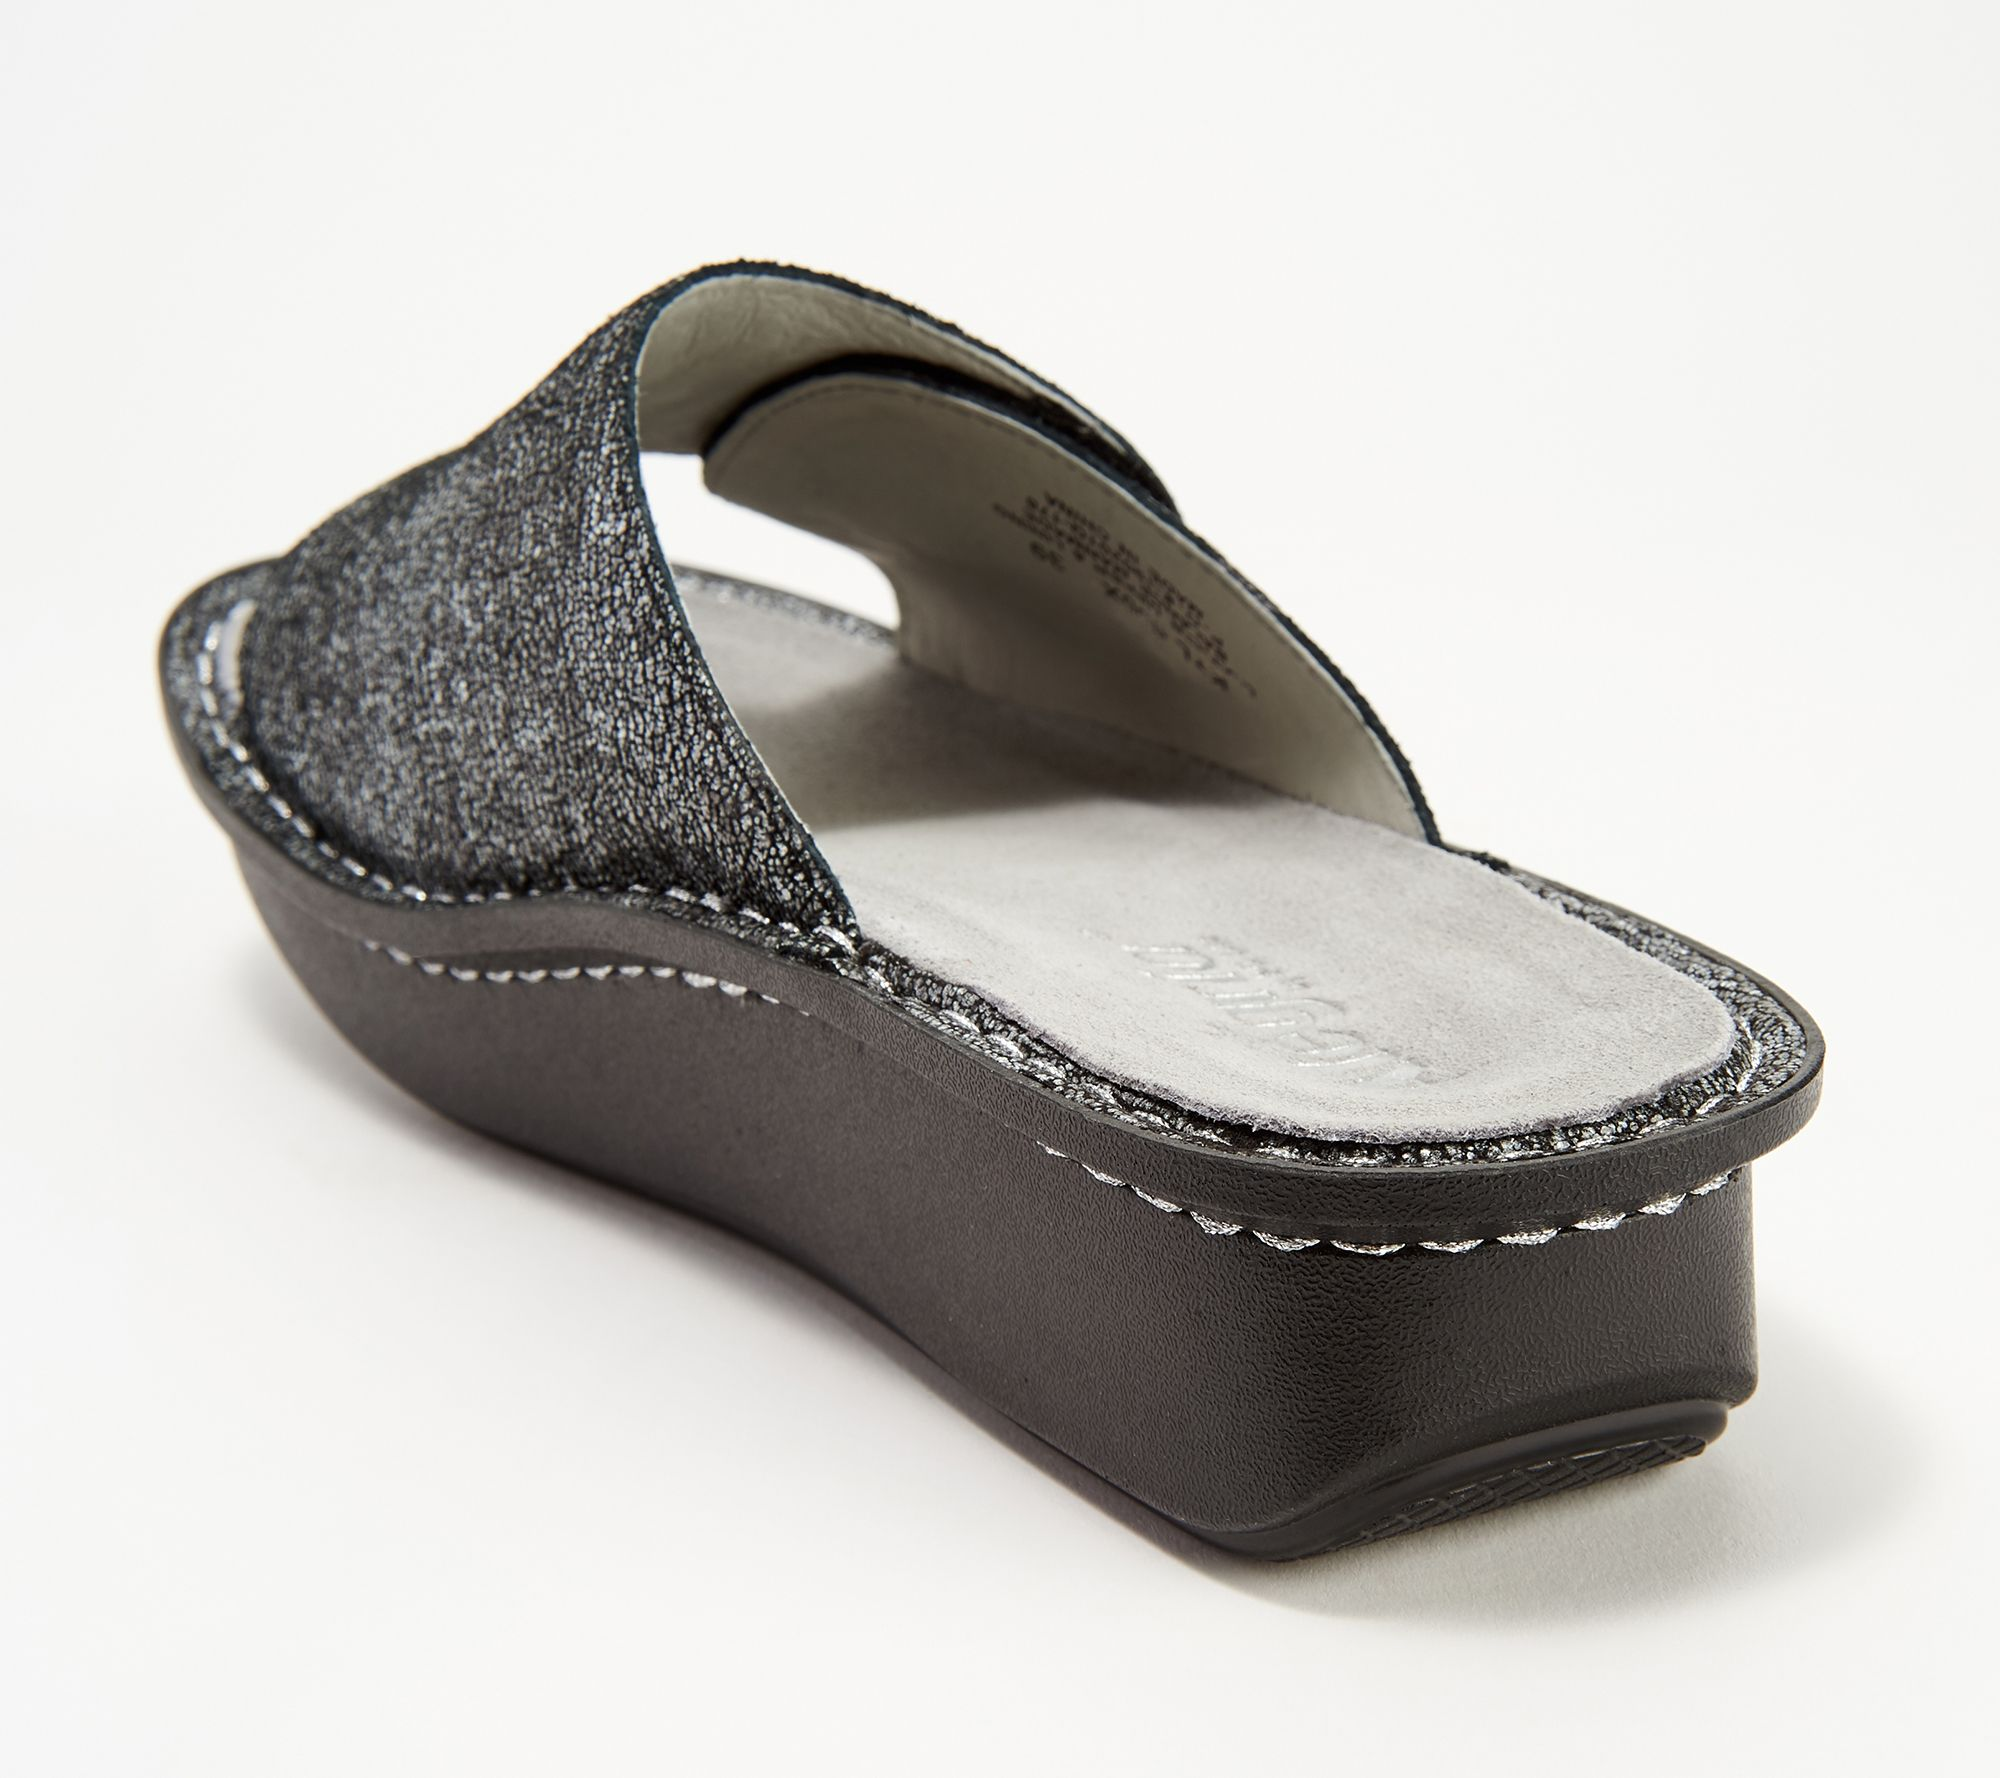 09fbb8bb4102 Alegria Leather Printed Slide Sandals - Kylee - Page 1 — QVC.com